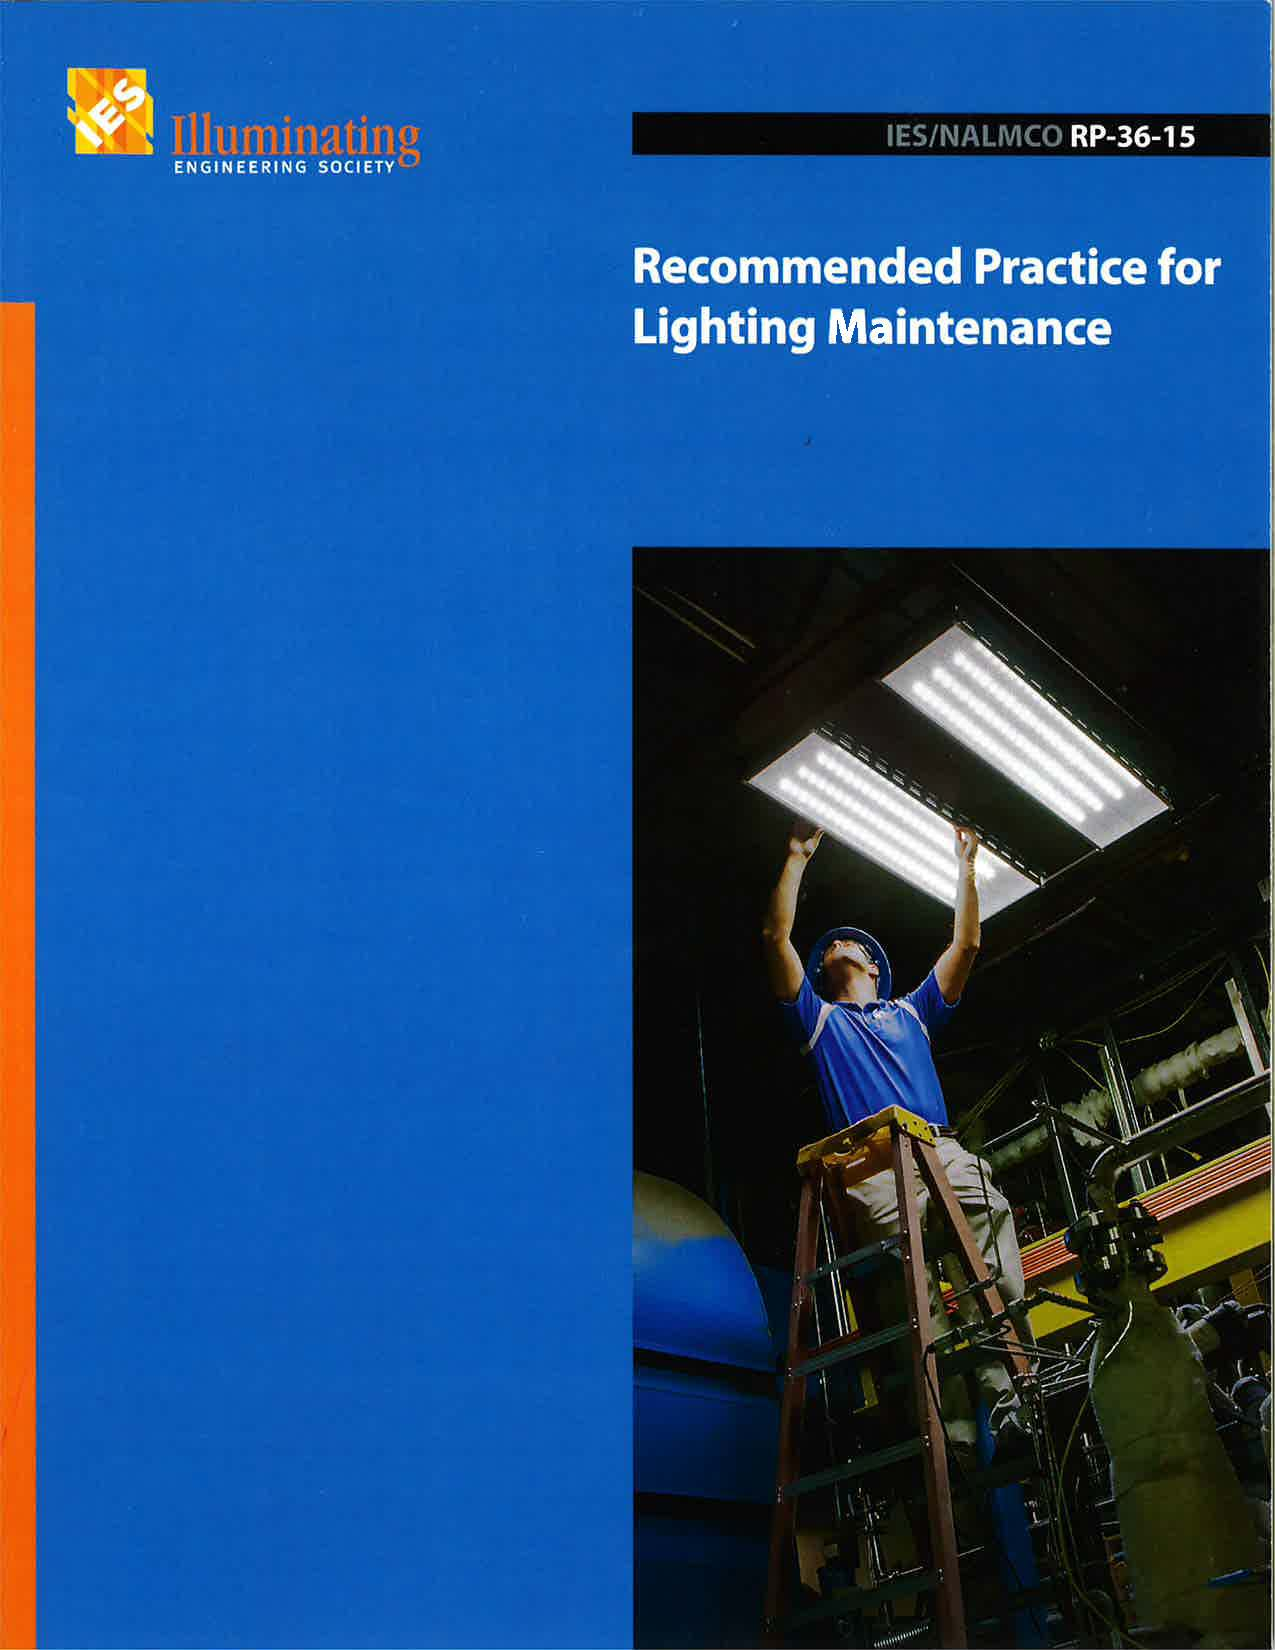 Recommended Practice for Lighting Maintenance